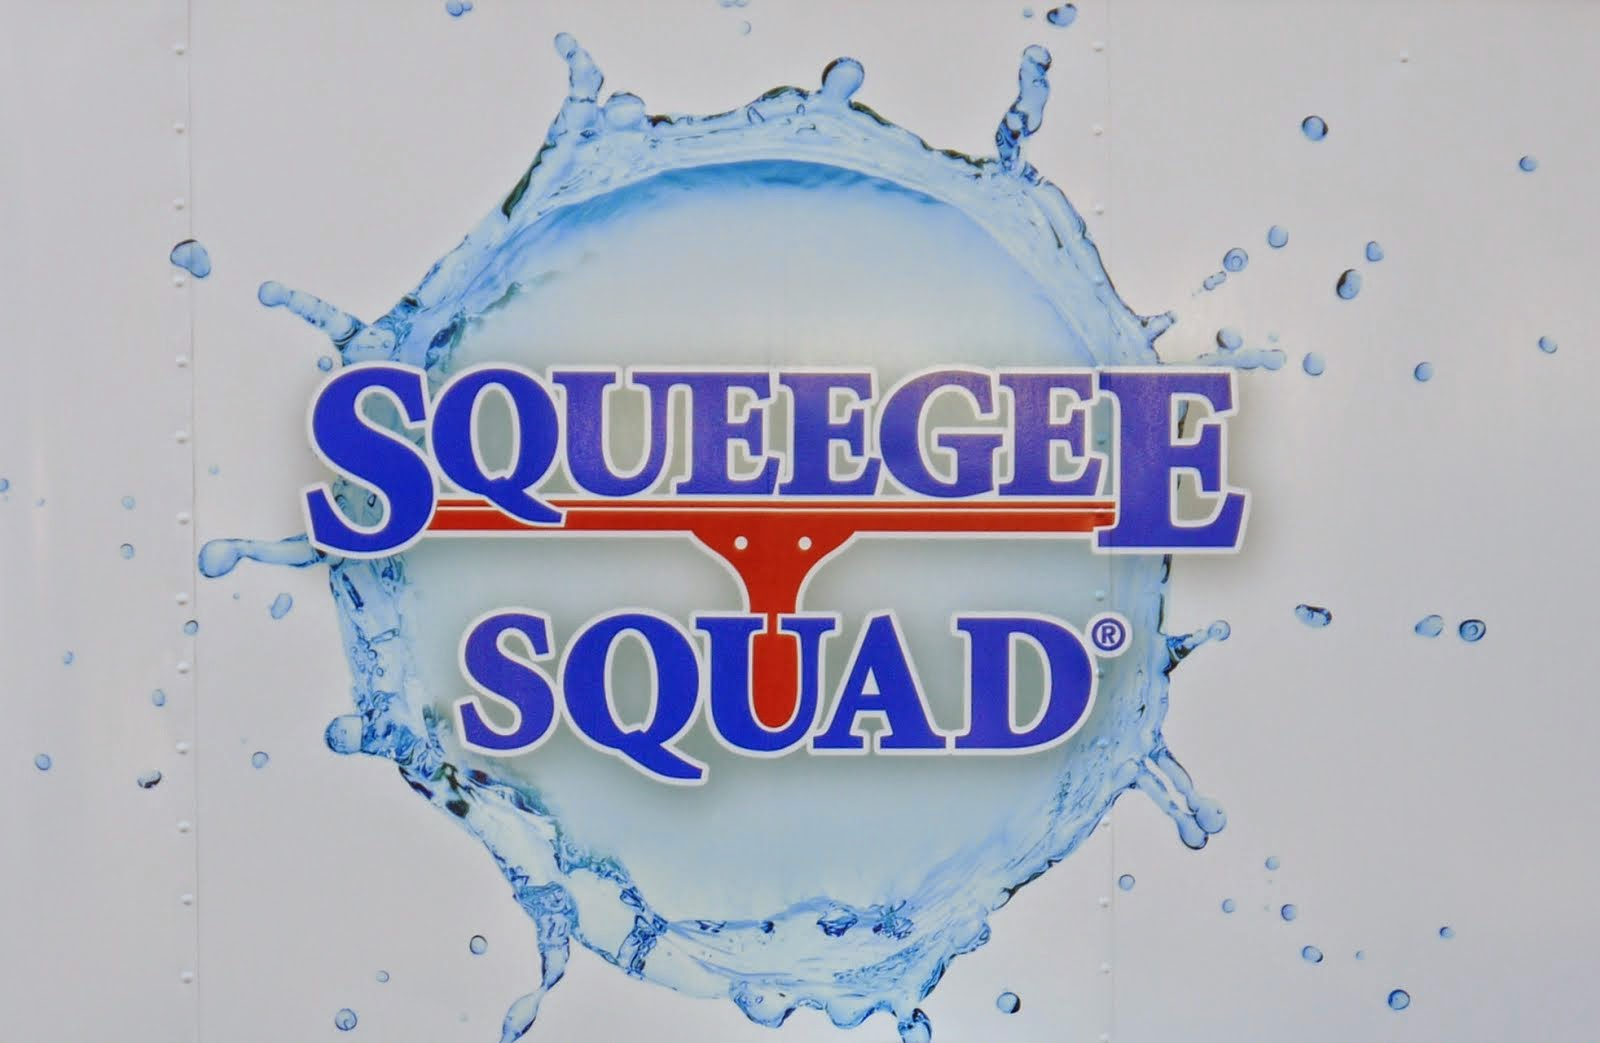 SQUEEGEESQUADFRANCHISE